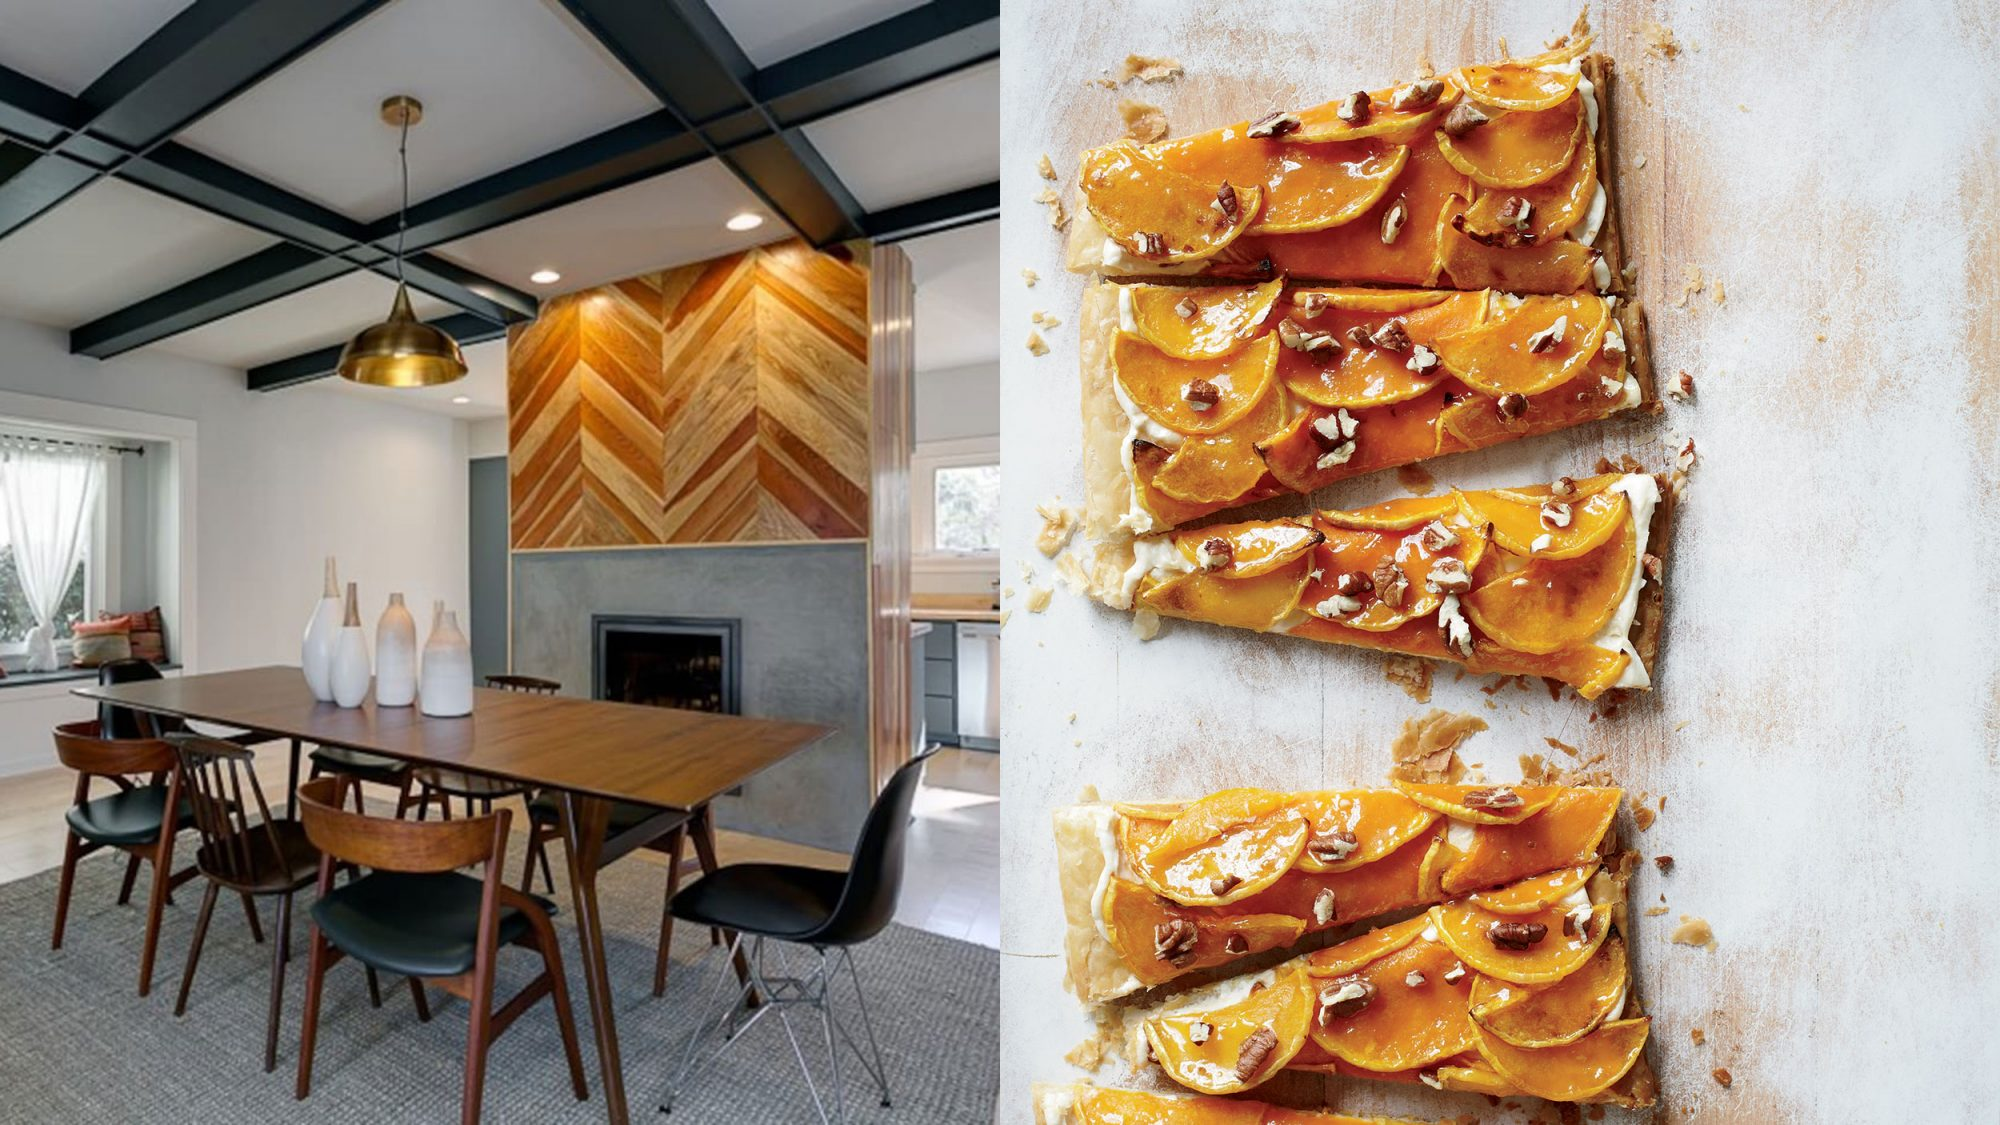 los-angeles-butternut-squash-glazed-tart-FT-AIRBNB1116.jpg